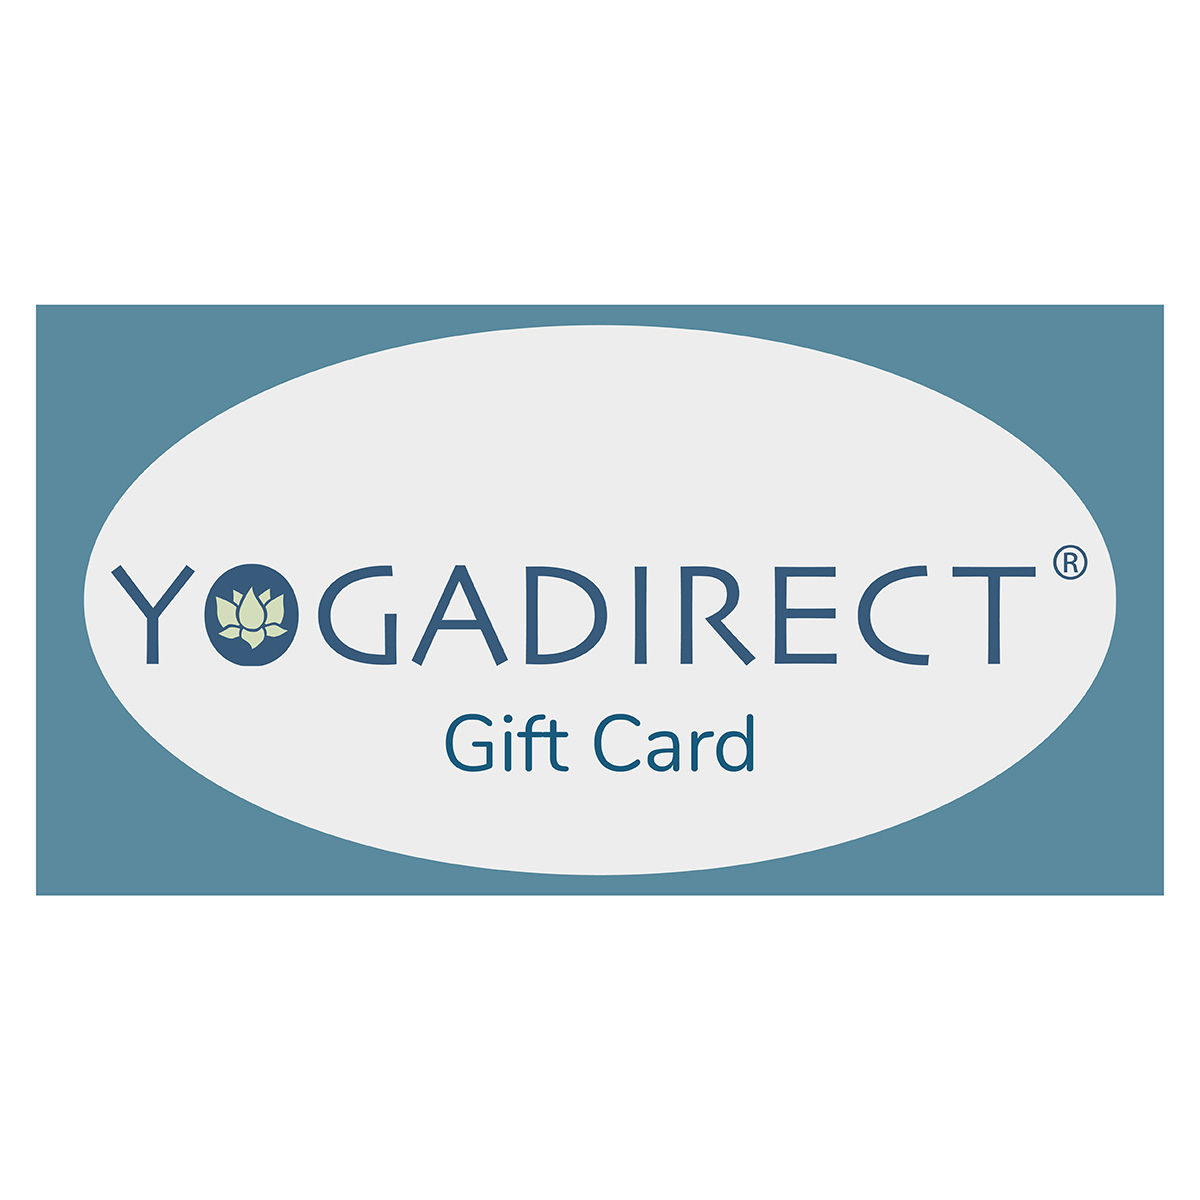 $100 Gift Card from YogaDirect.com